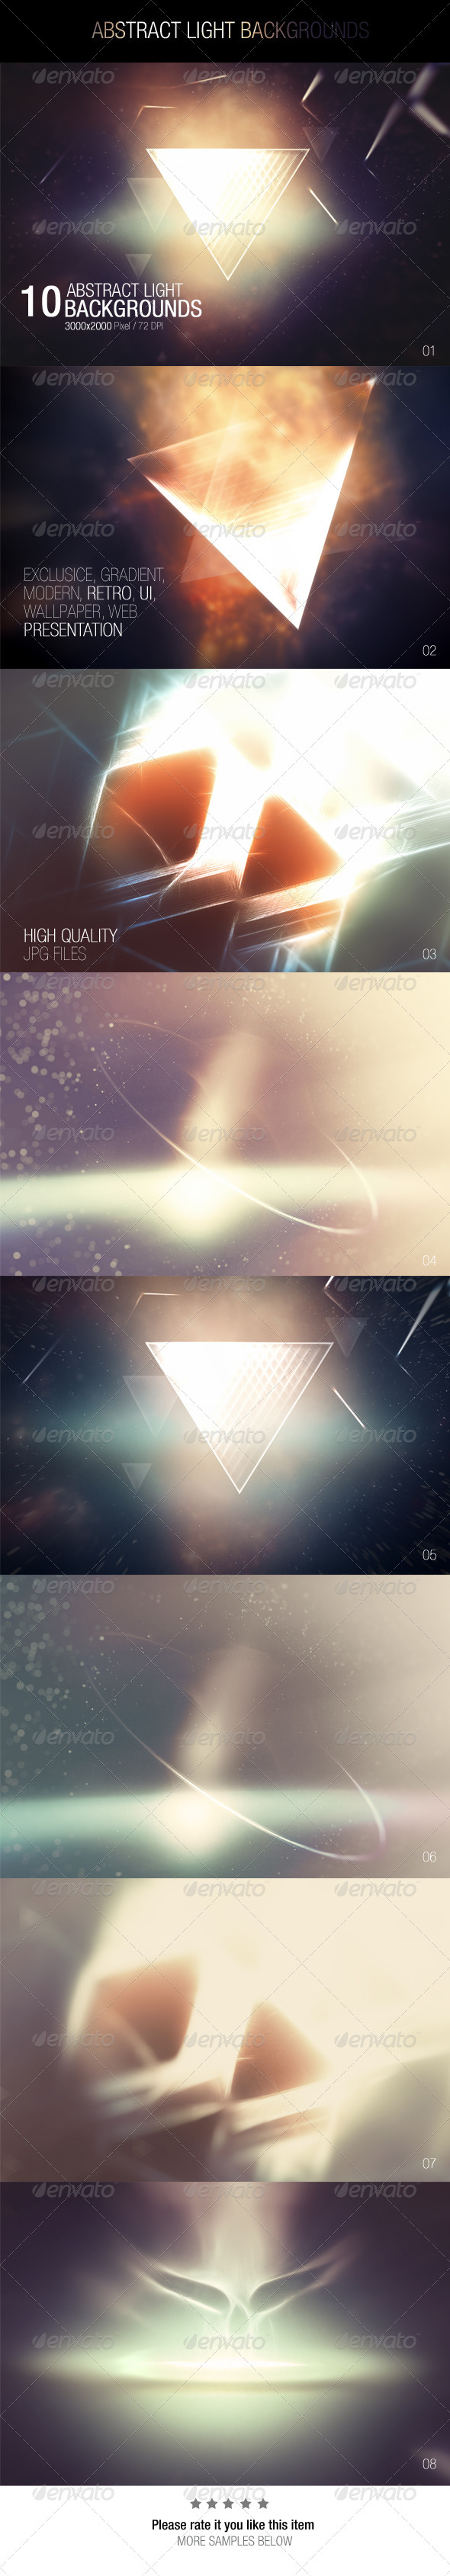 GraphicRiver Abstract Light Backgrounds 7590840